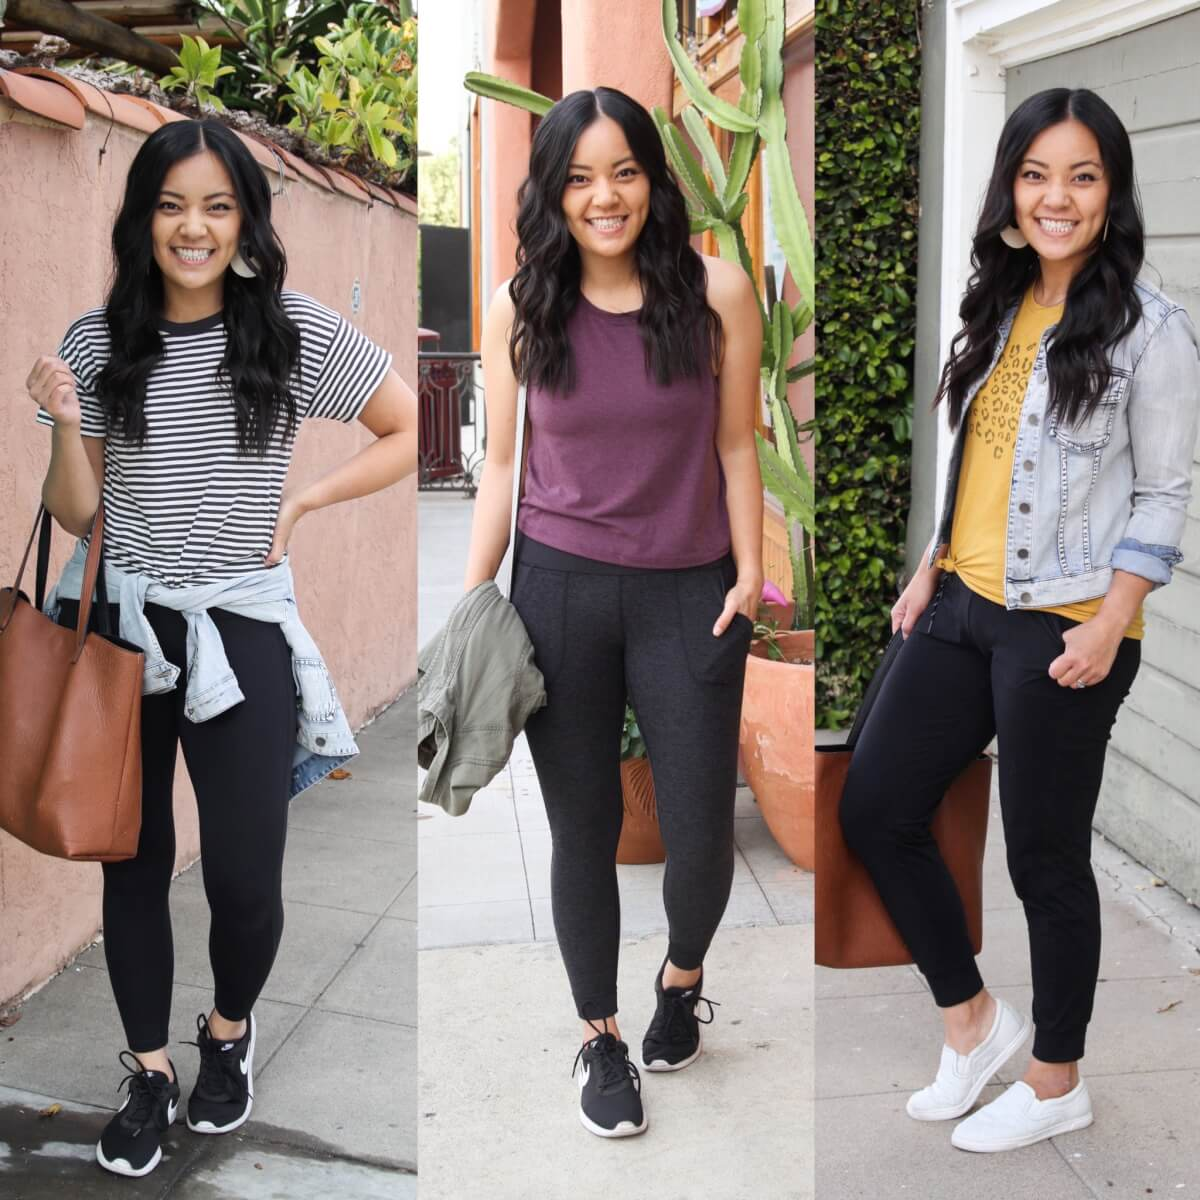 Casual and athleisure outfits: striped black and white tee + black leggings + denim jacket + black sneakers + tan tote, purple tank + gray joggers, yellow graphic tee + black joggers + white slip-on shoes + denim jacket